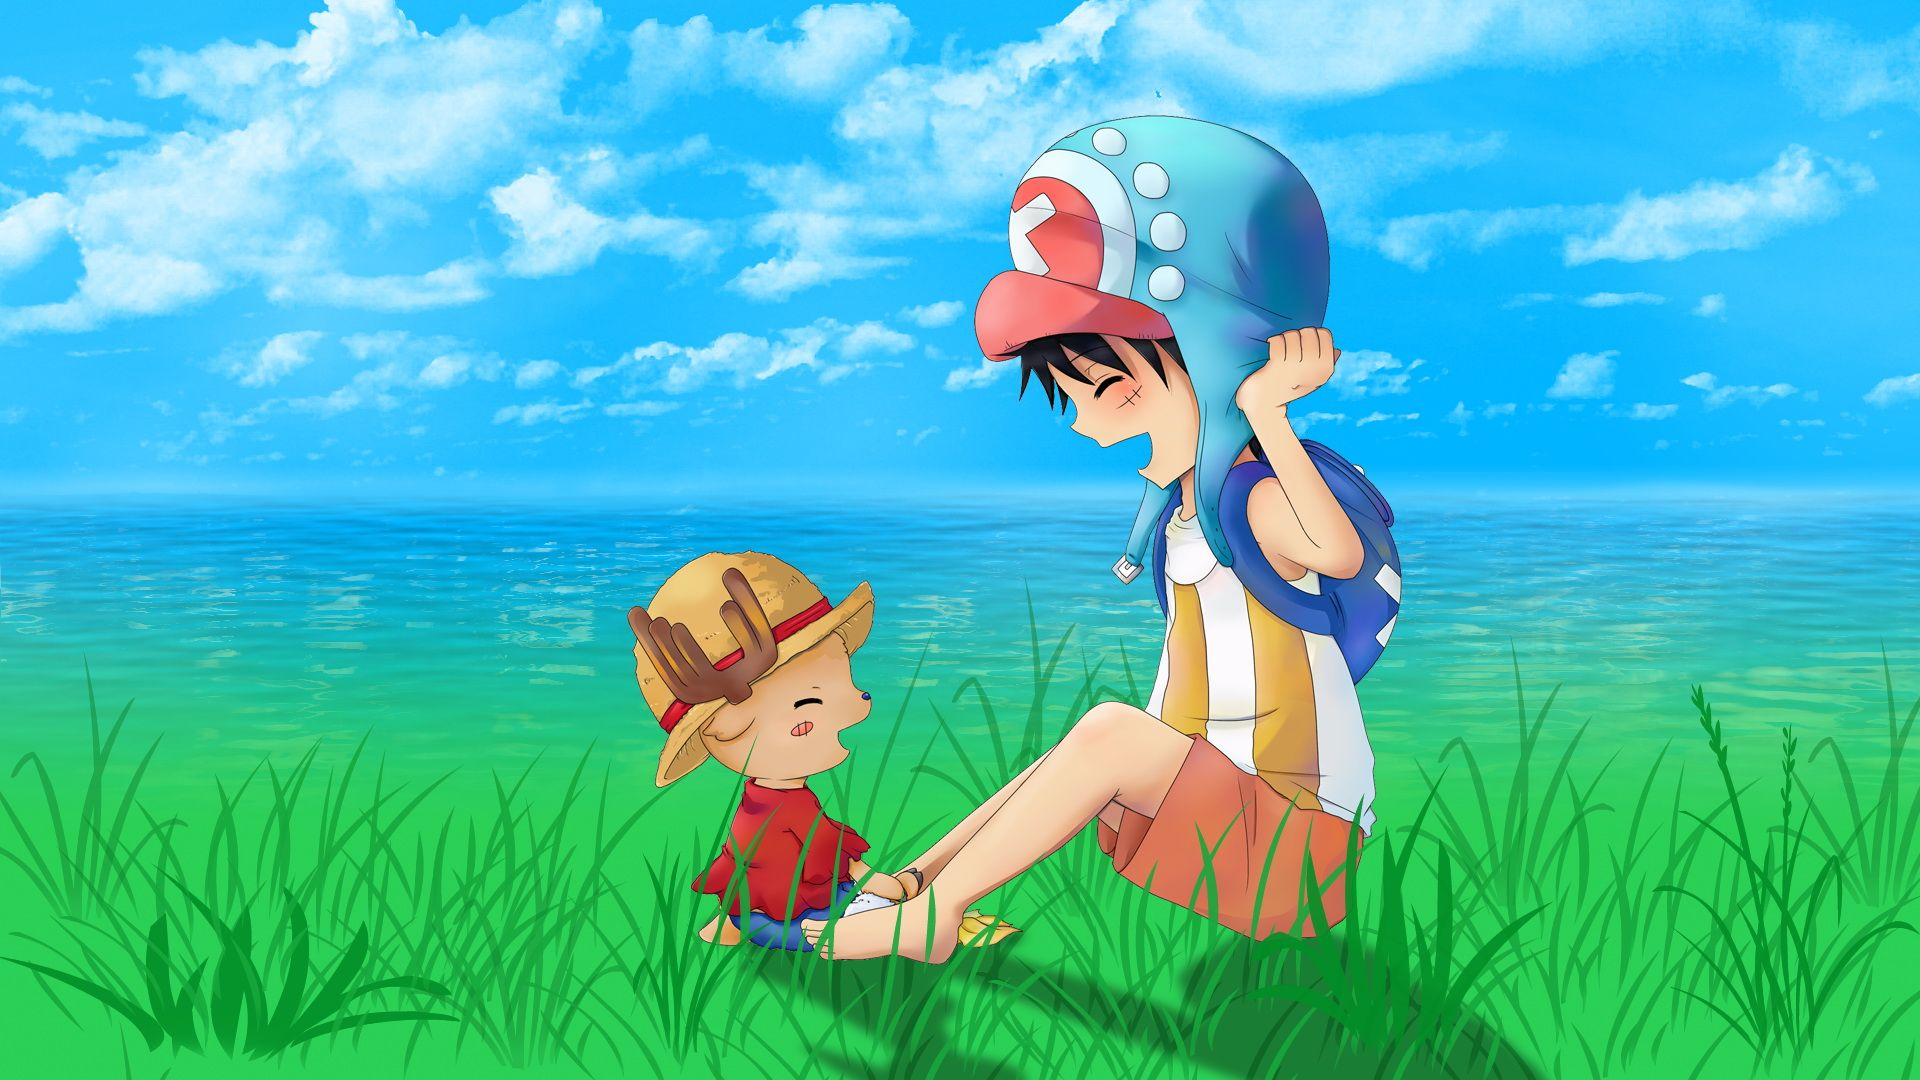 One Piece Chopper Wallpapers 1080p On Wallpaper 1080p Hd One Piece Chopper One Piece Chopper